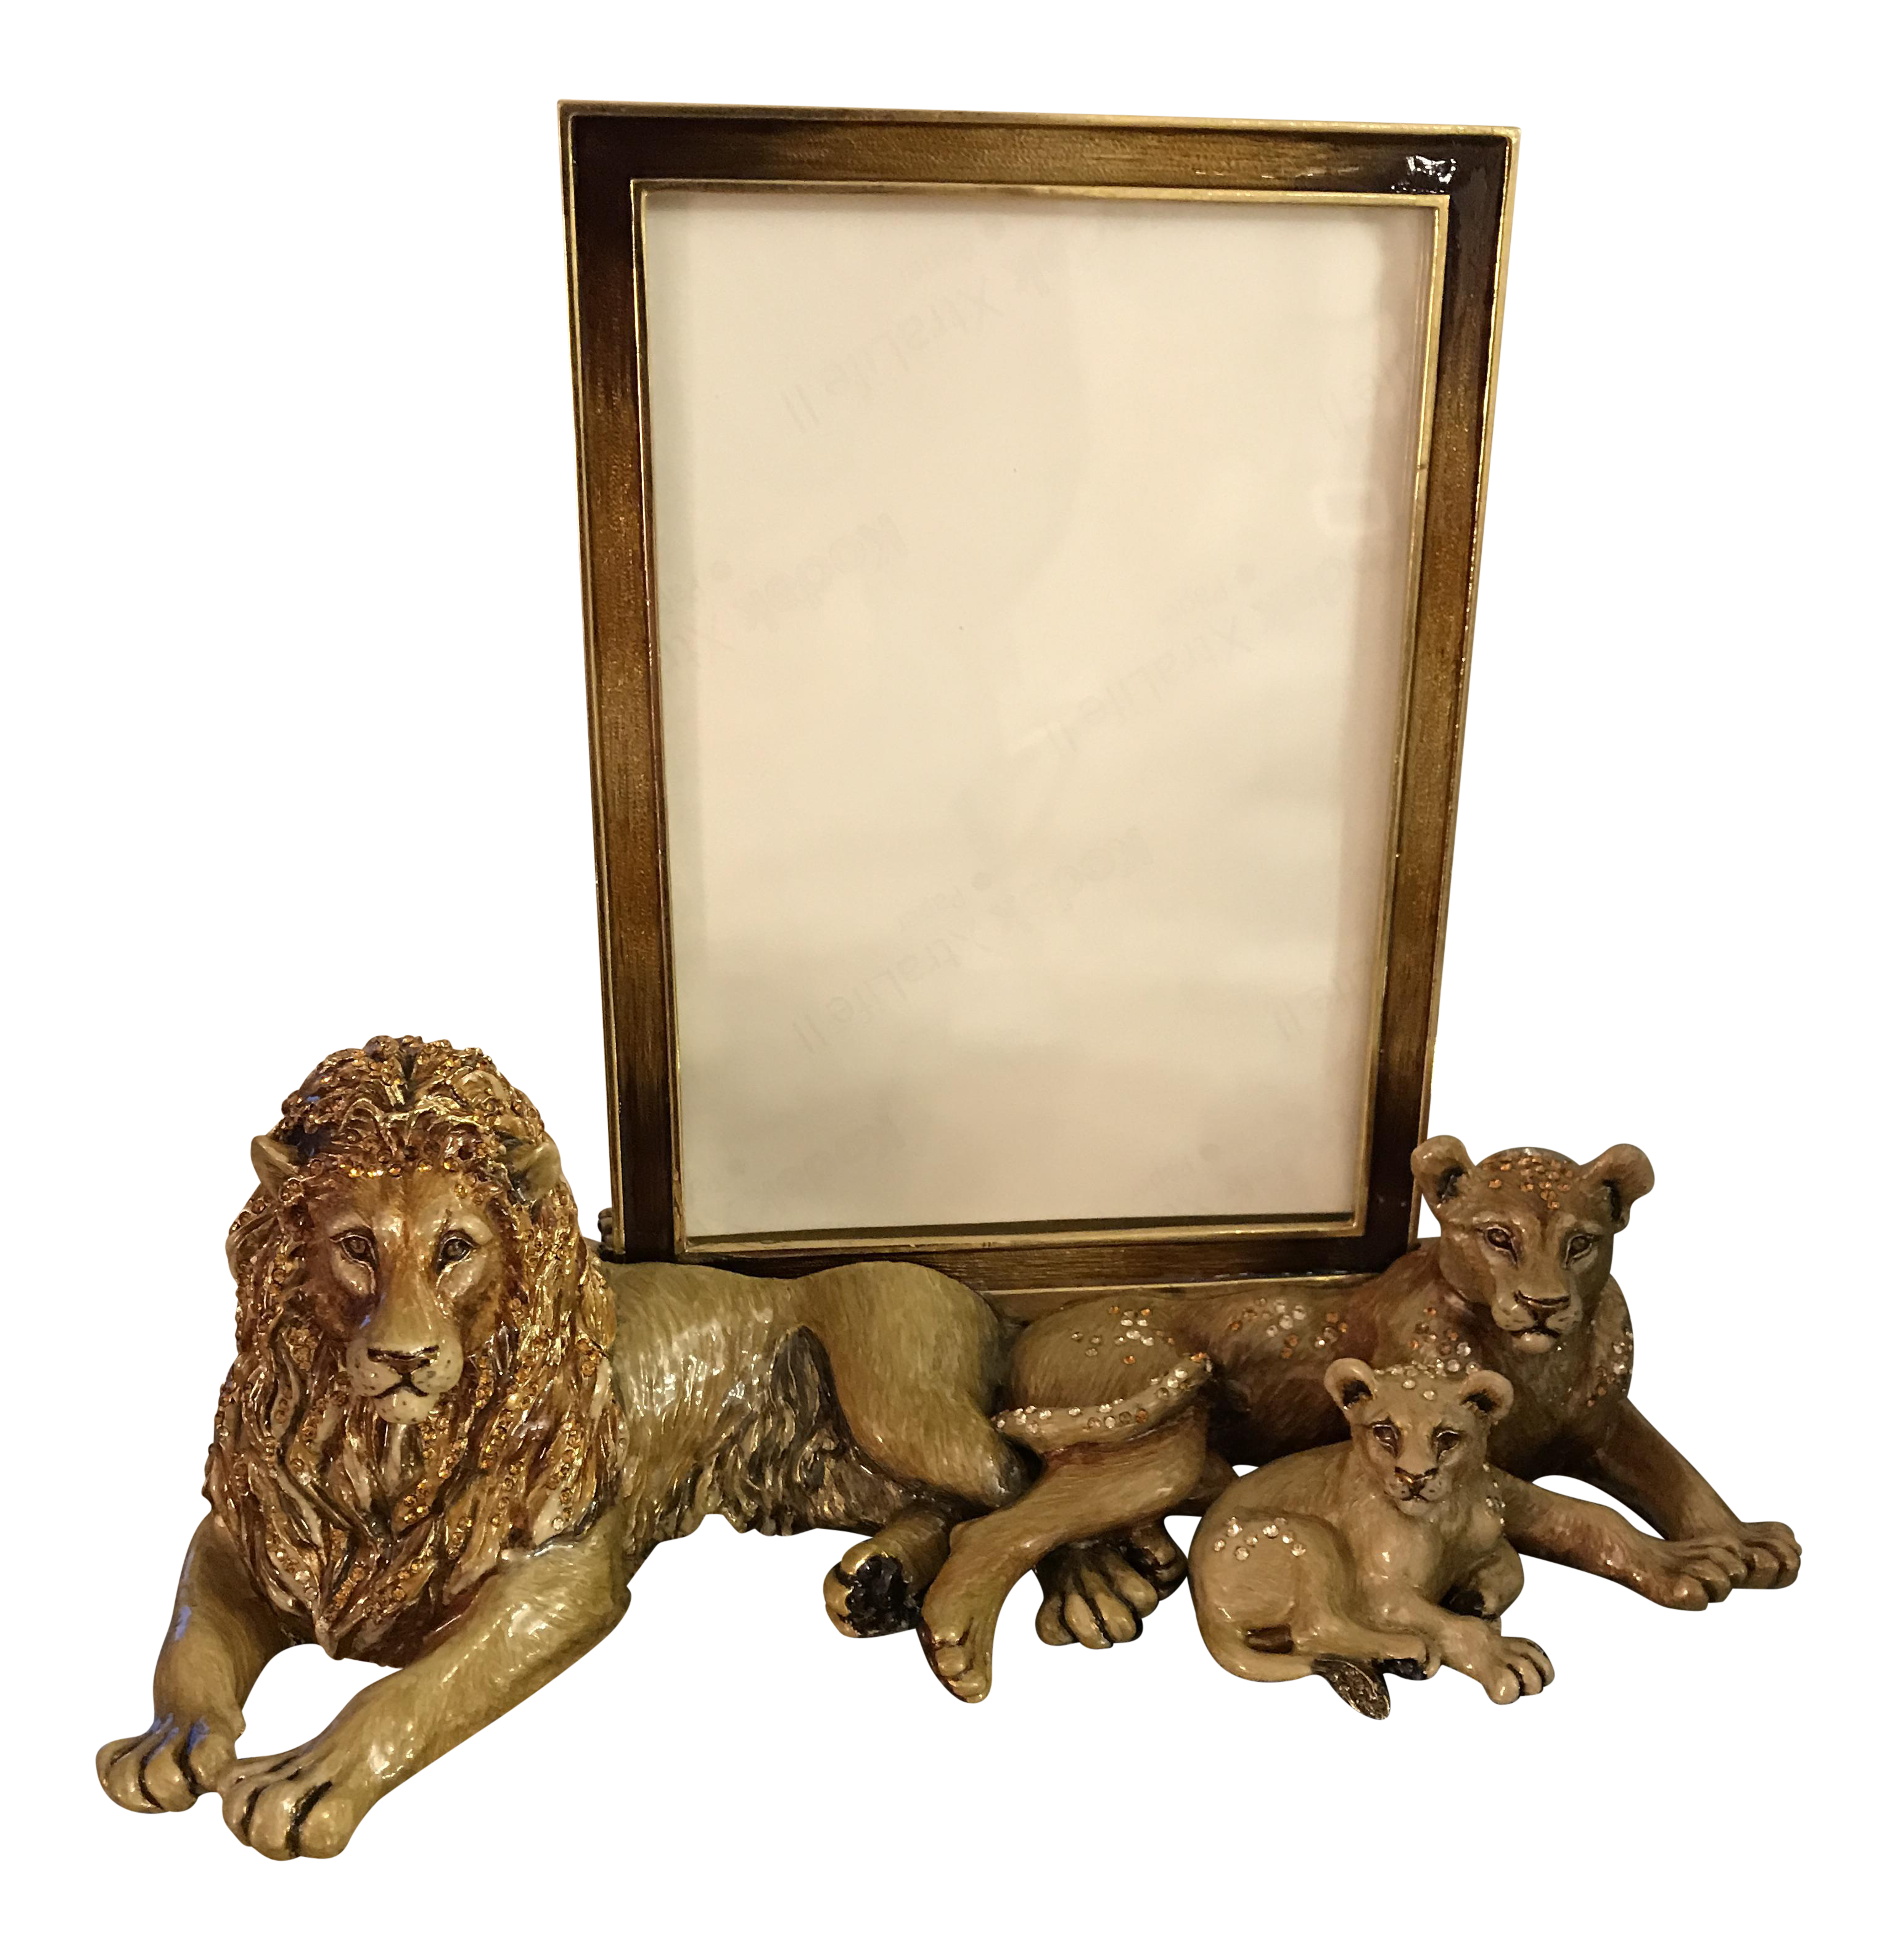 jay strong water lion family picture frame chairish. Black Bedroom Furniture Sets. Home Design Ideas